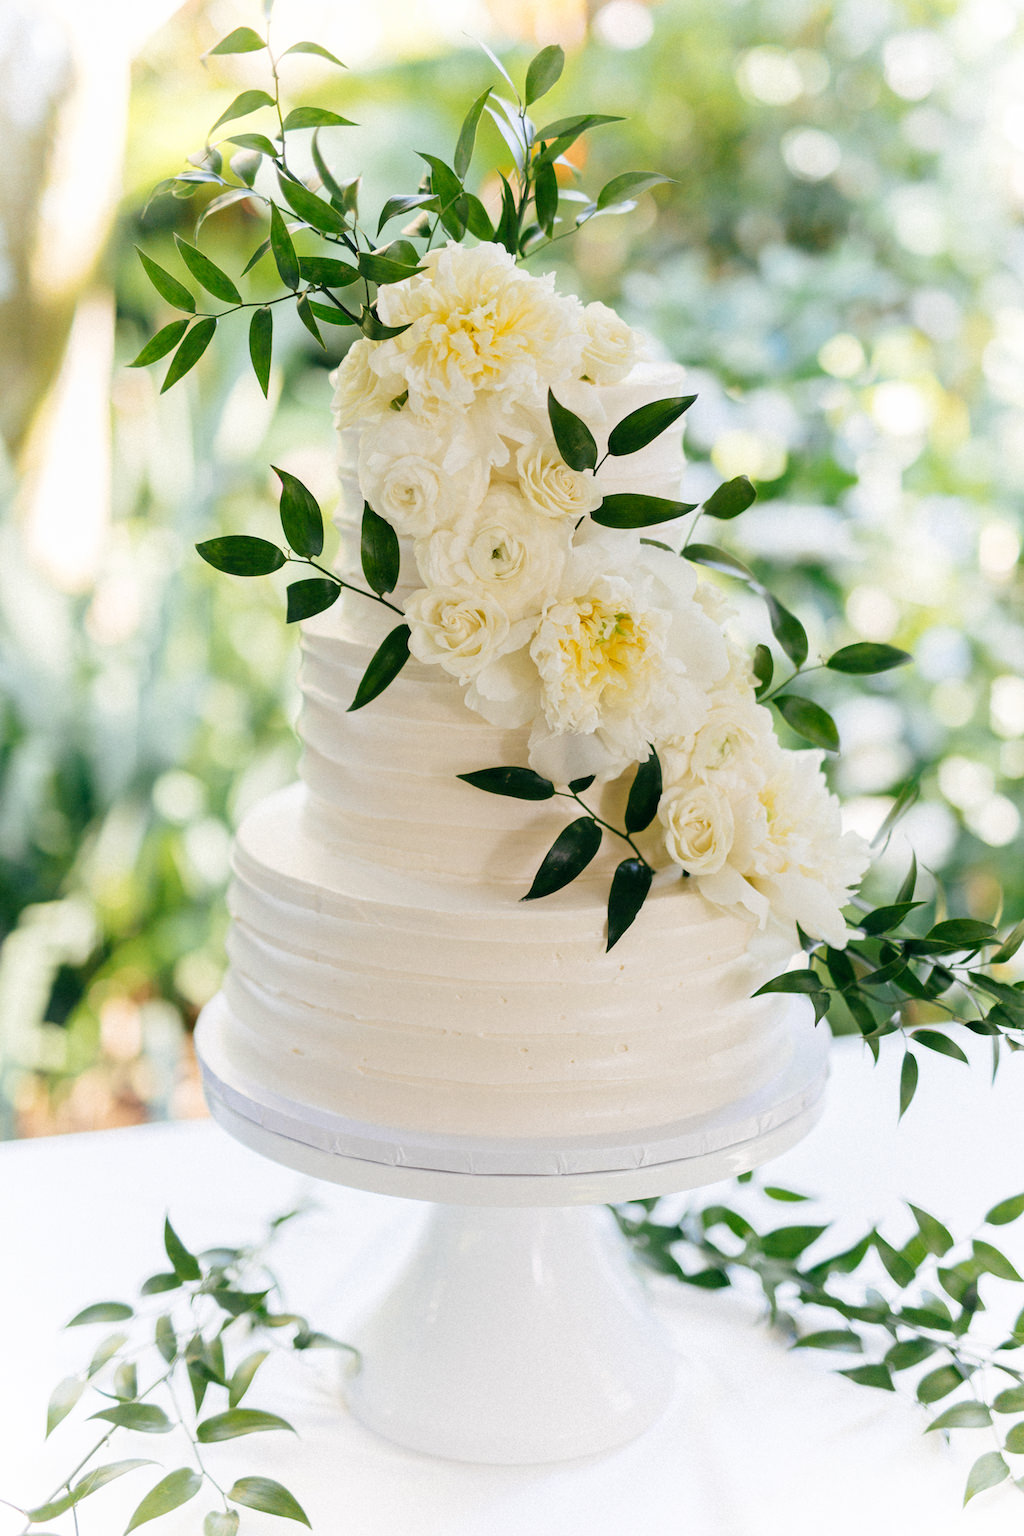 Classic Elegant Three Tier White Wedding Cake Garnished with Real Ivory Flowers and Greenery Leaves on White Cake Stand